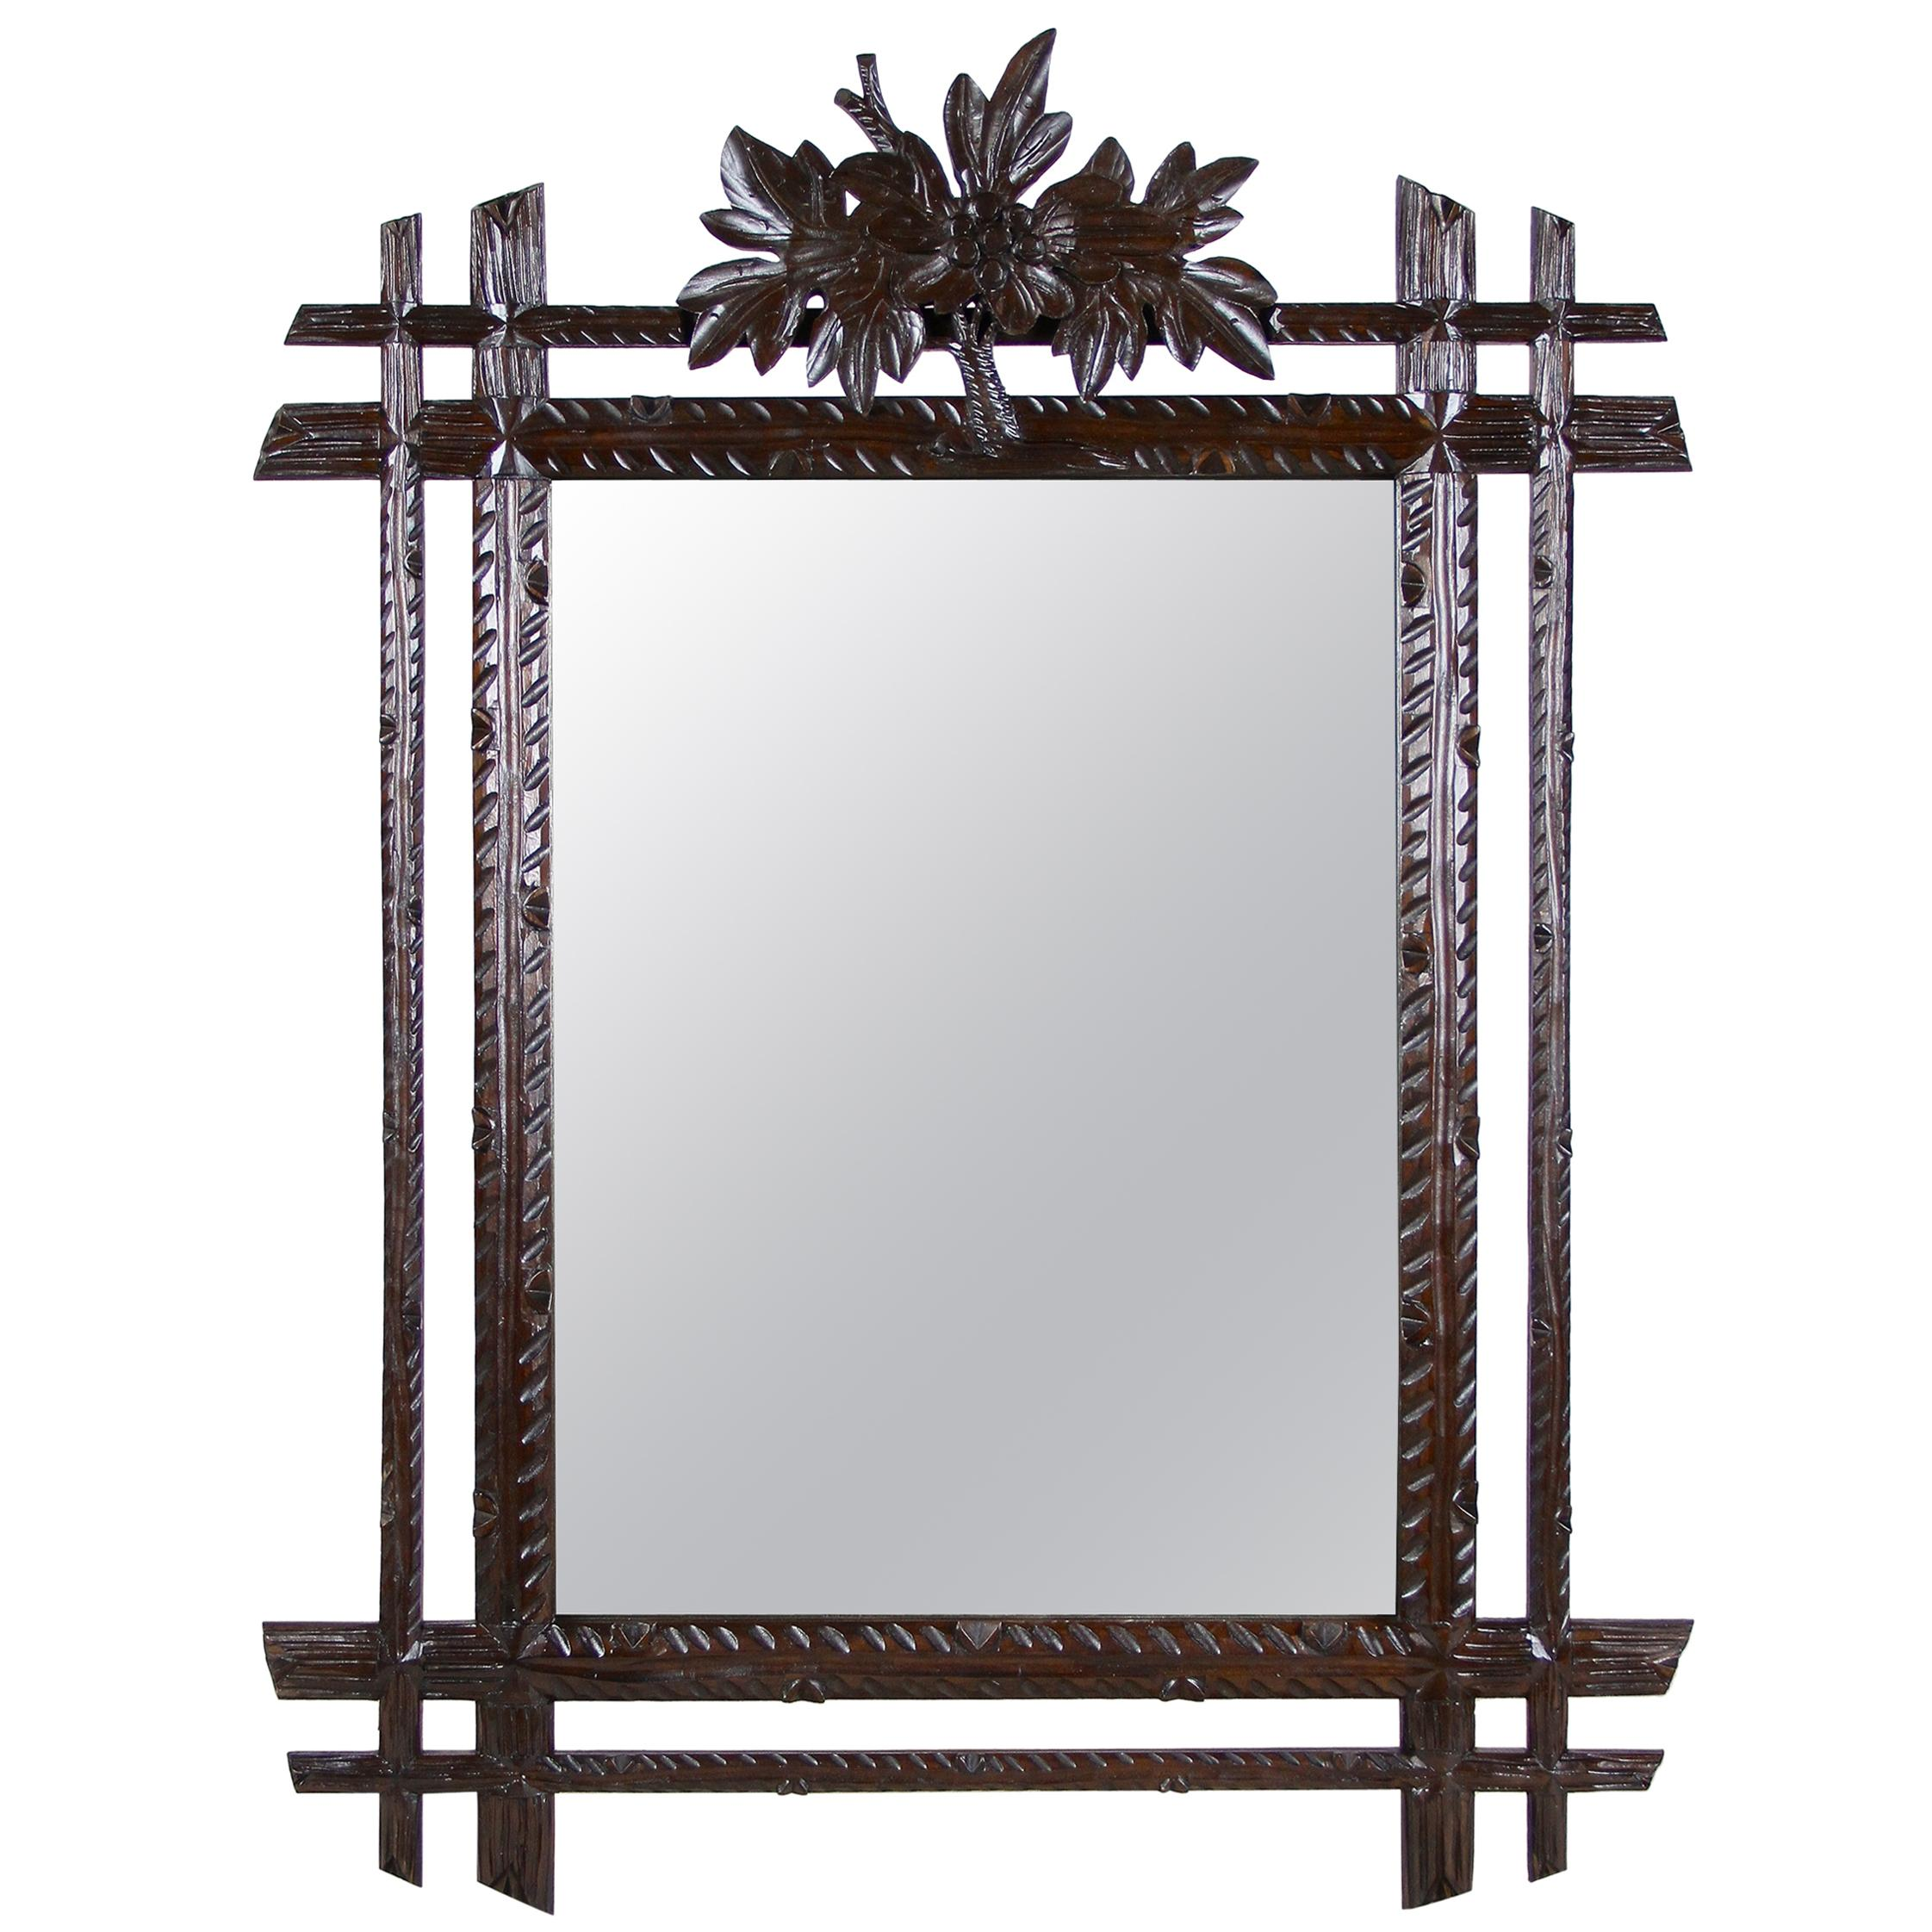 Black Forest Rustic Wall Mirror with Center Top Carving, Austria, circa 1890